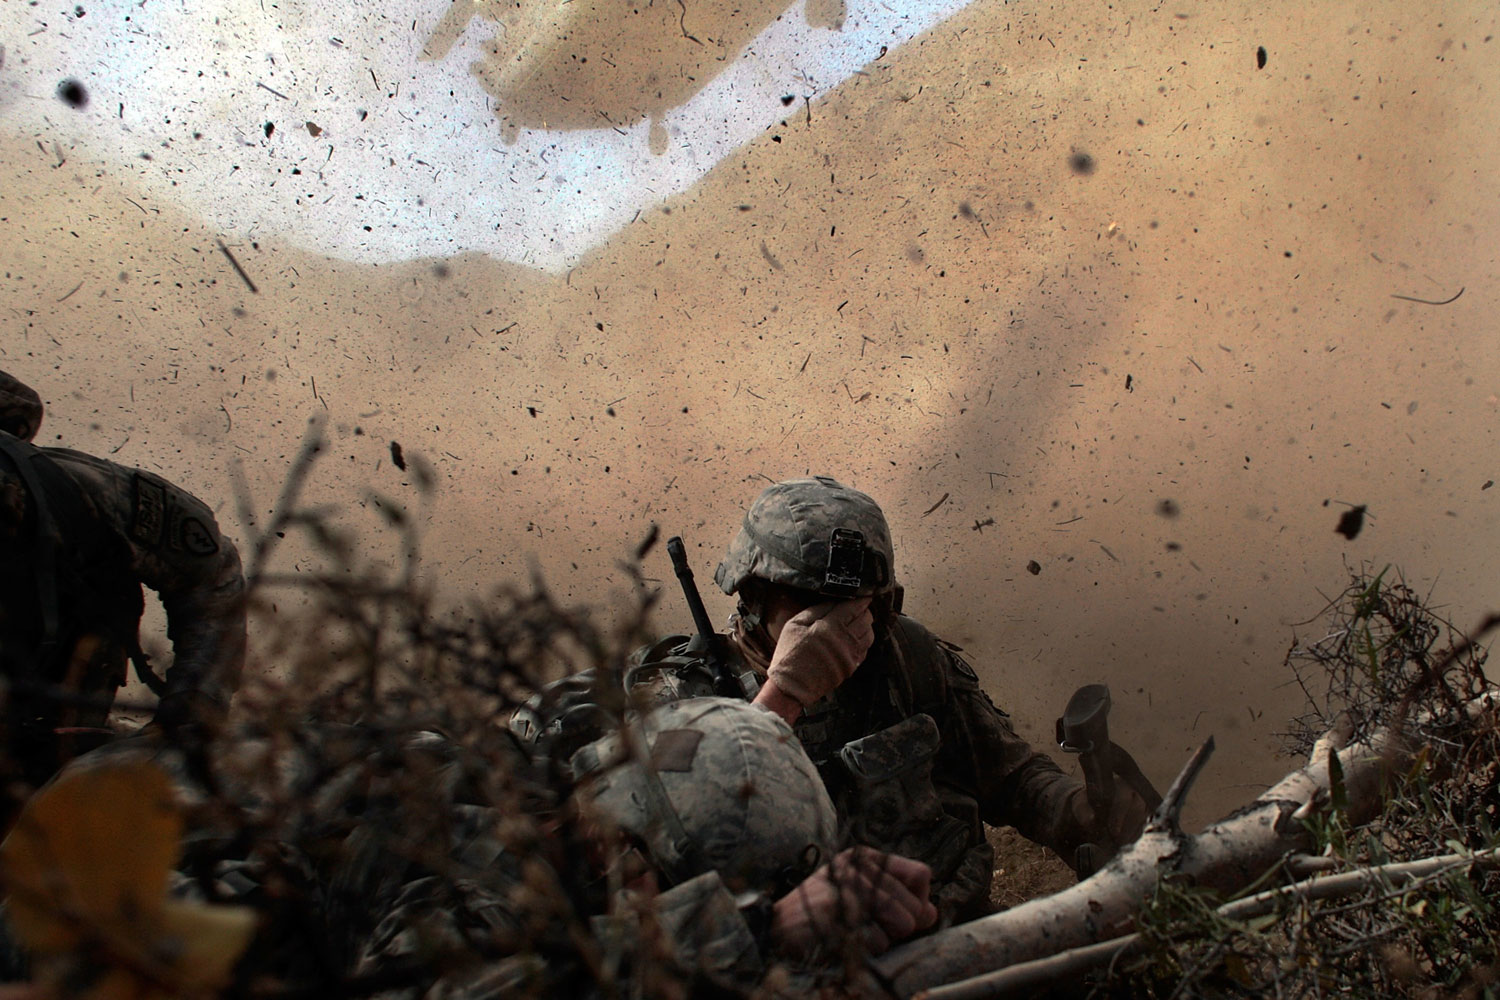 Paktika Province, Afghanistan, October 15, 2009:   US Army soldiers in the 1/501st of the 25th Infantry Division shield their eyes from the powerful rotor wash of a Chinook cargo helicopter as they are picked up from a mission October 15, 2009 in Paktika Province, Afghanistan.